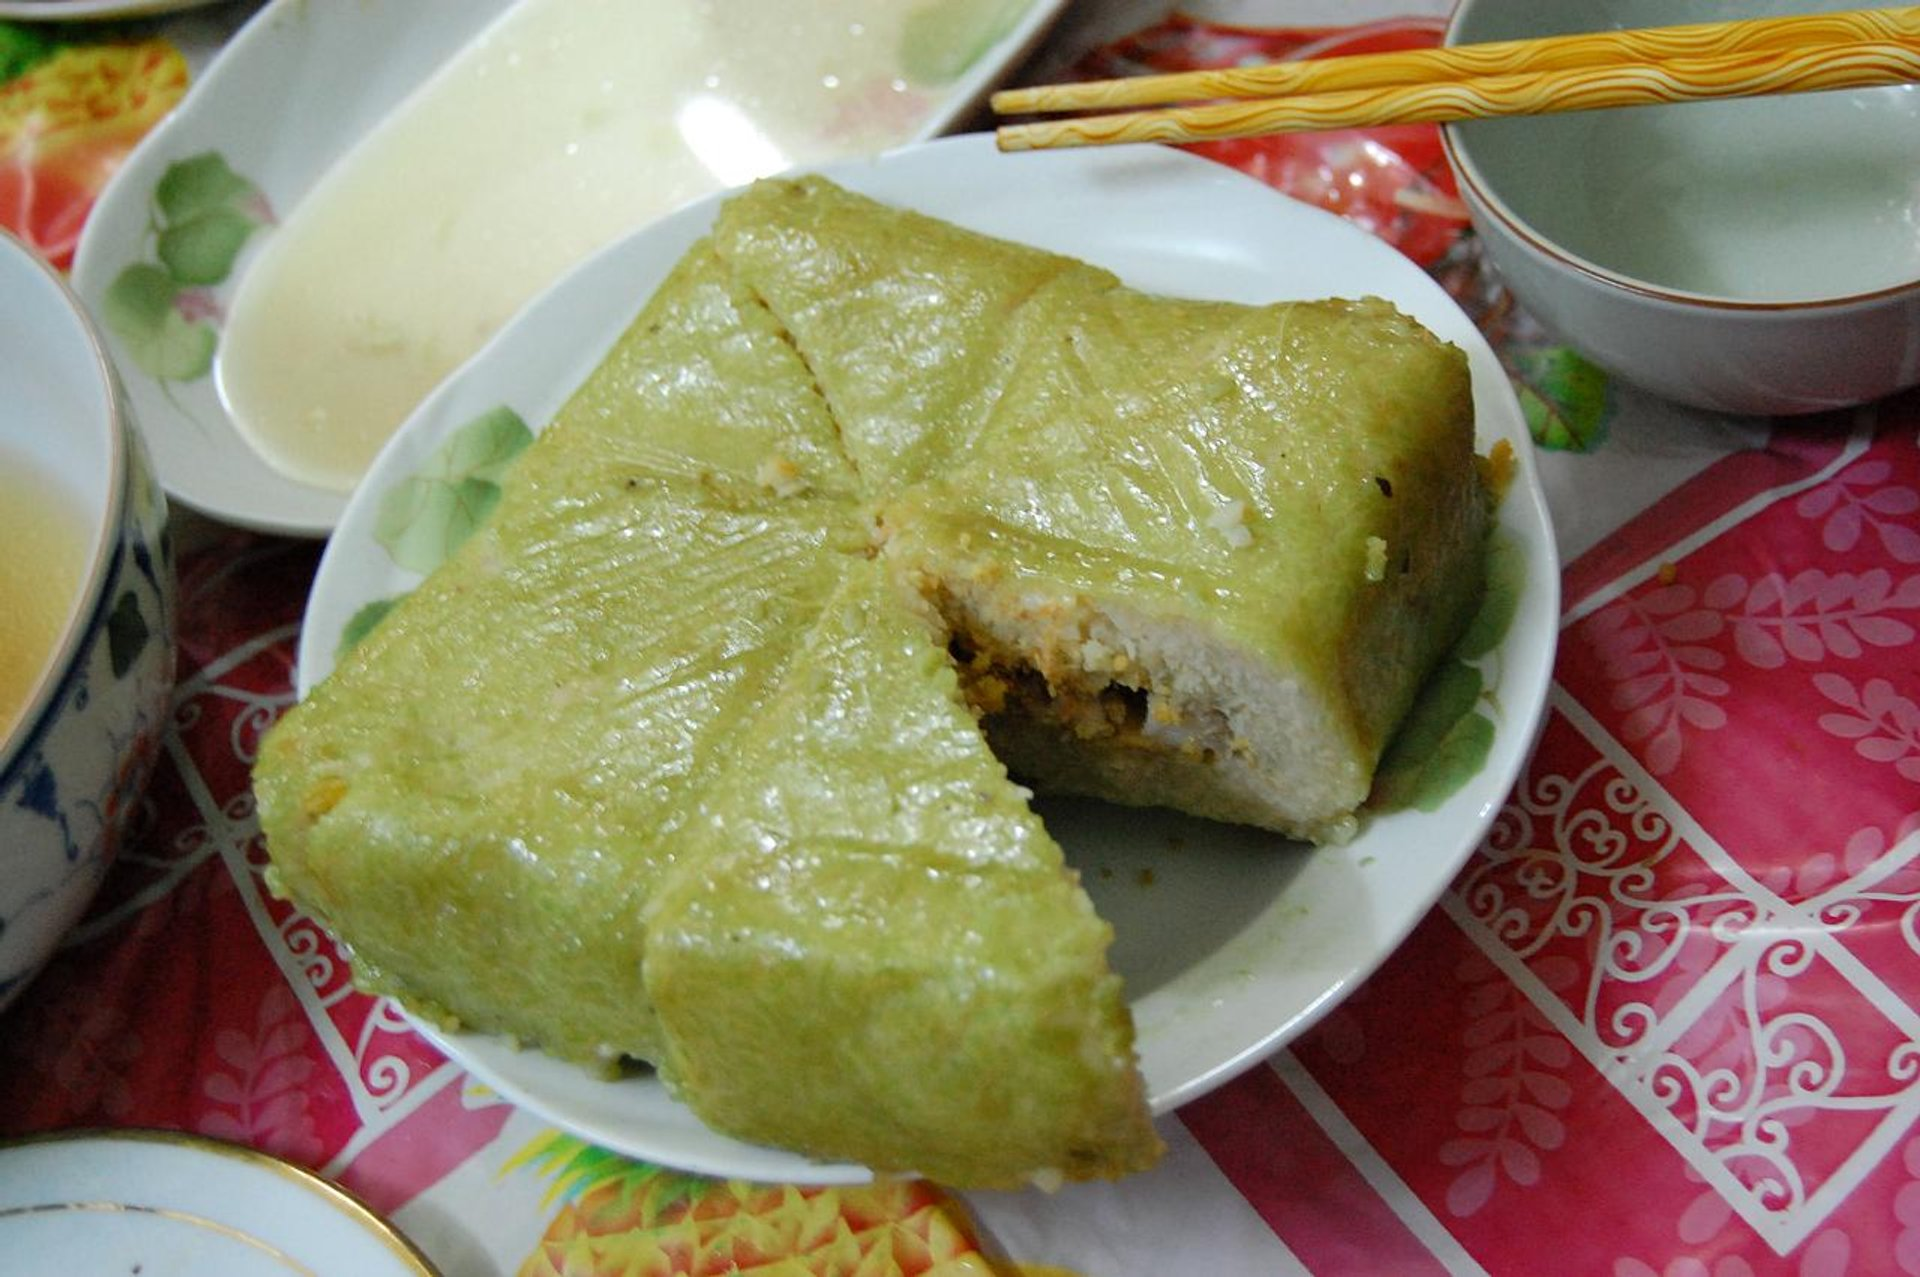 Best time for Banh Chung for Tet in Vietnam